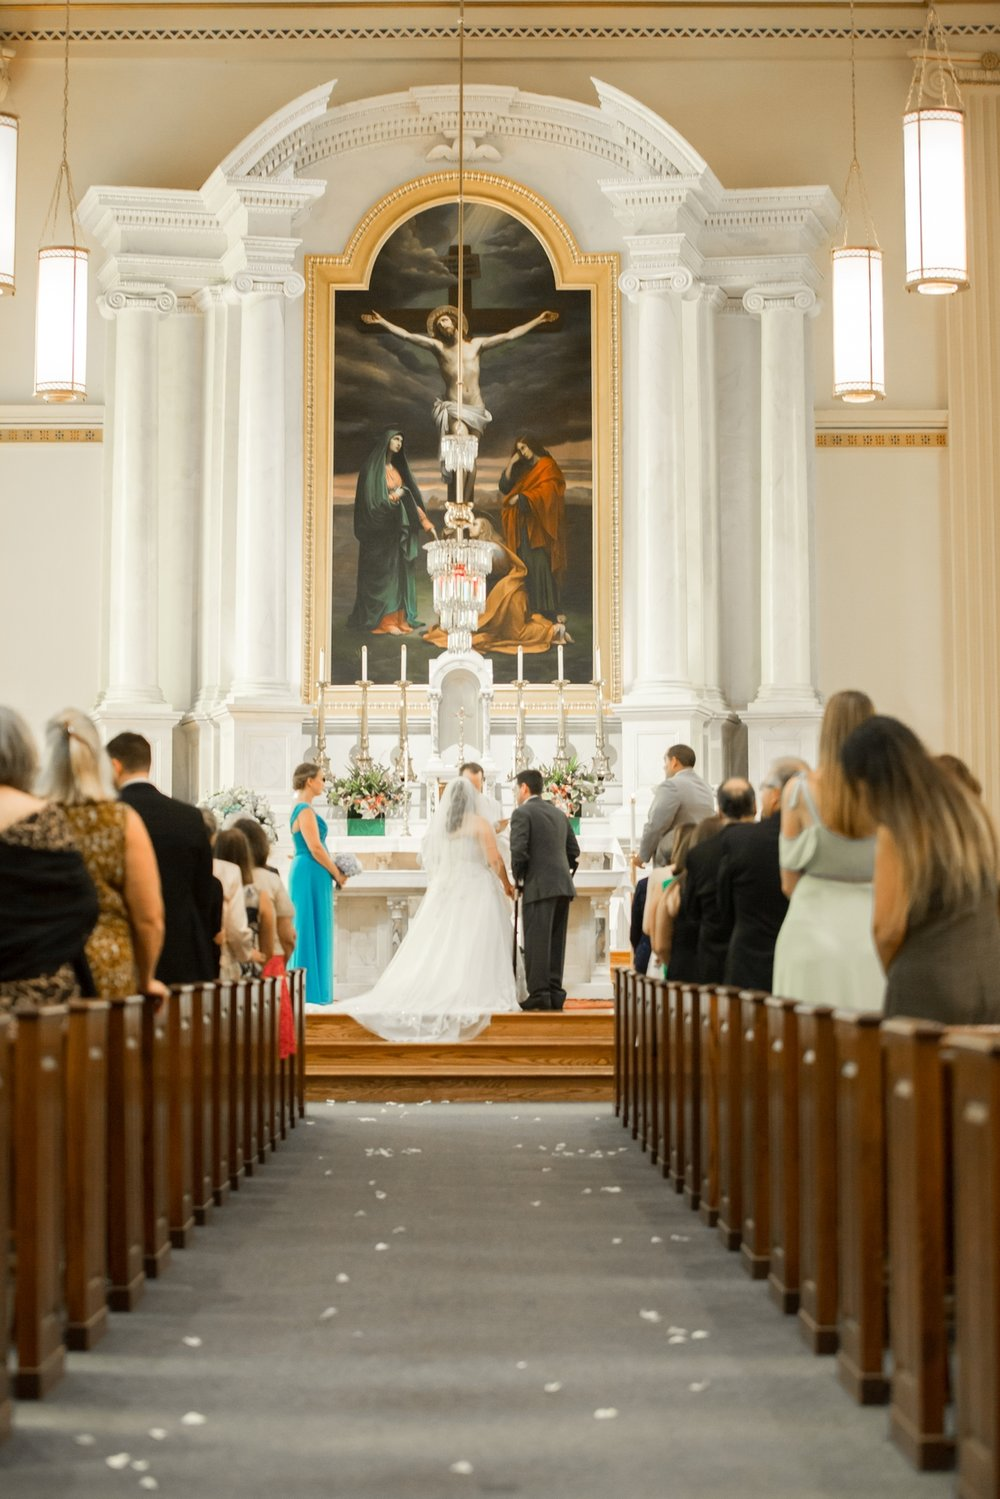 Bride and Groom on Altar.jpg